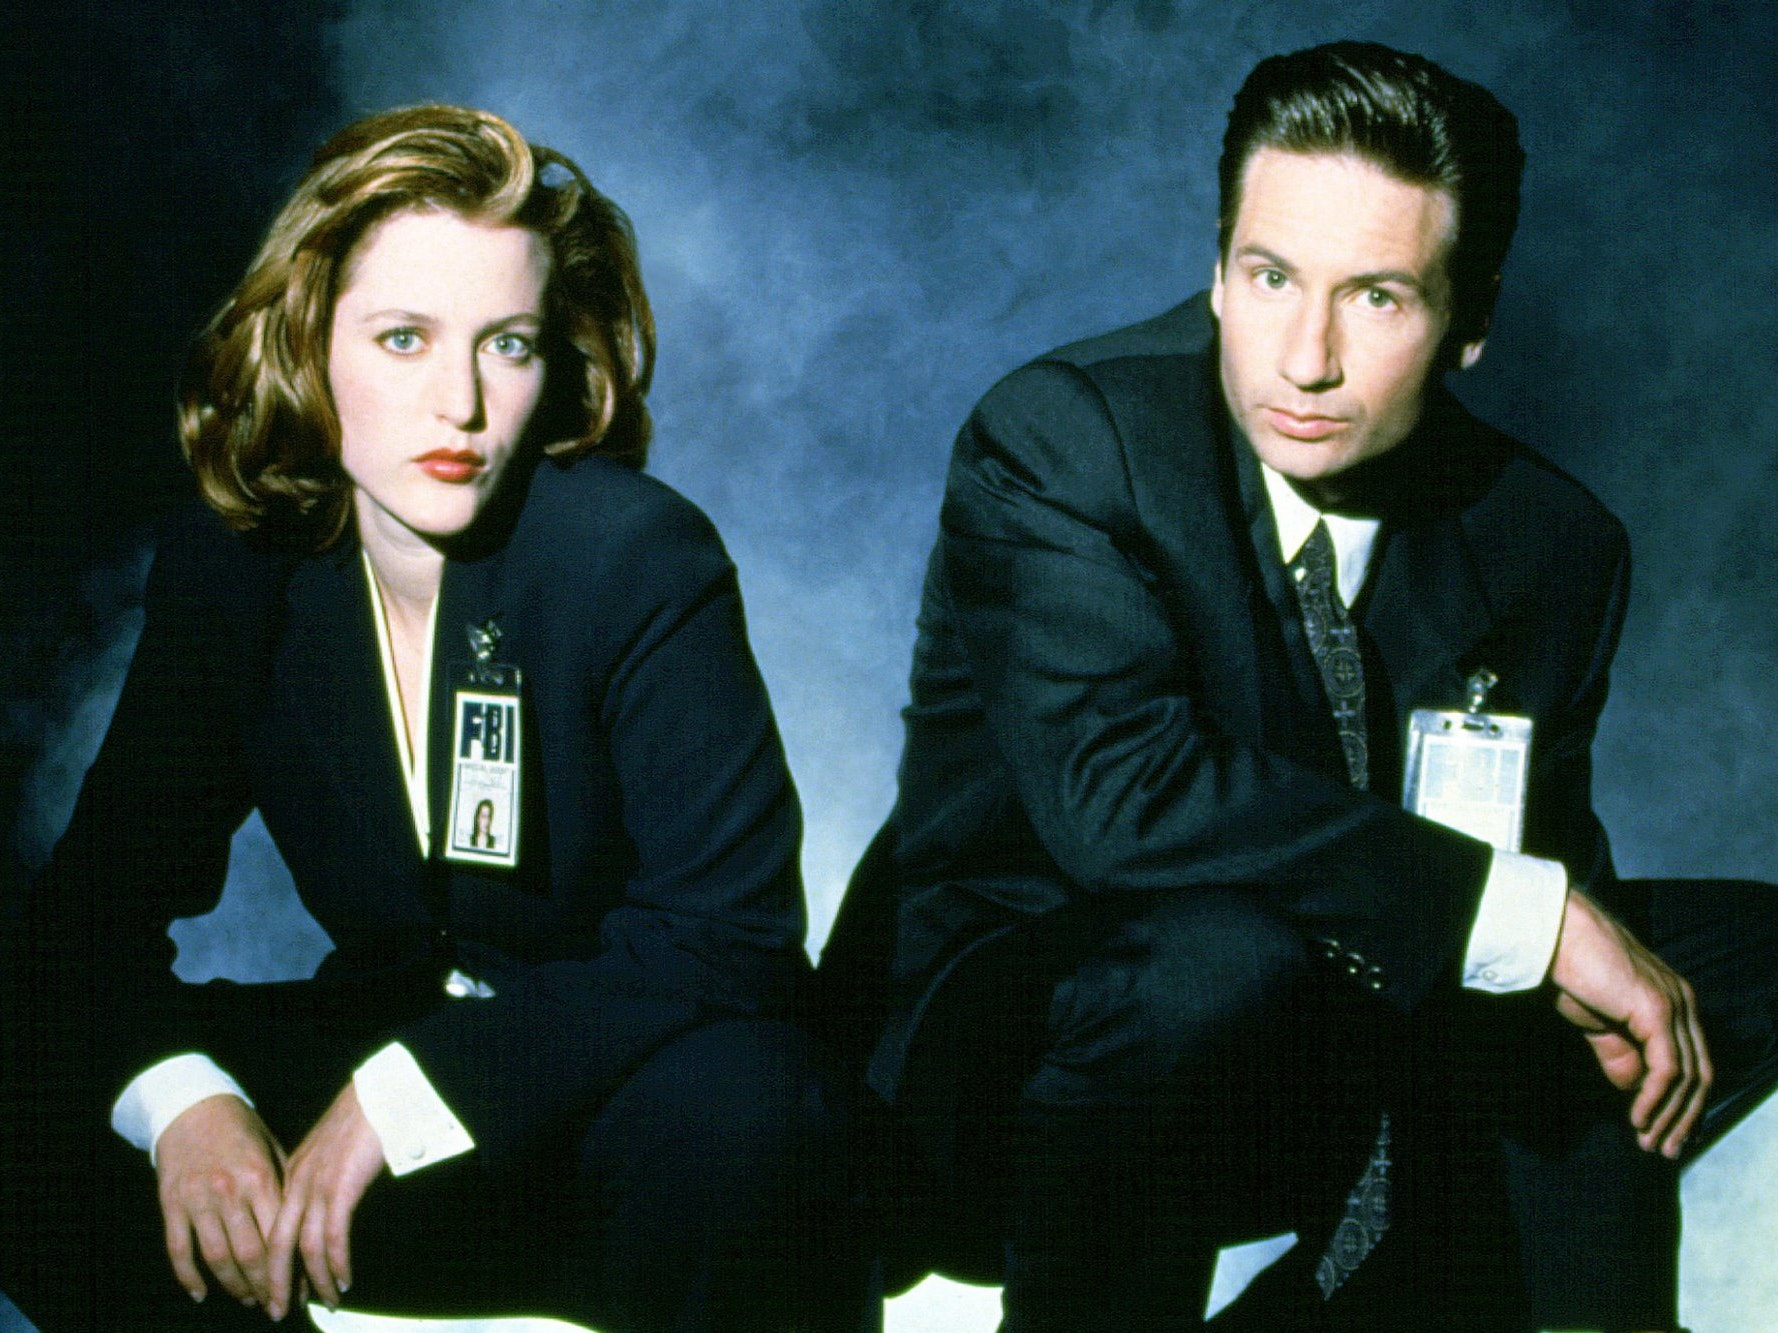 'X-Files' Map Shows UFO Sightings Both From the Show and Actually Reported